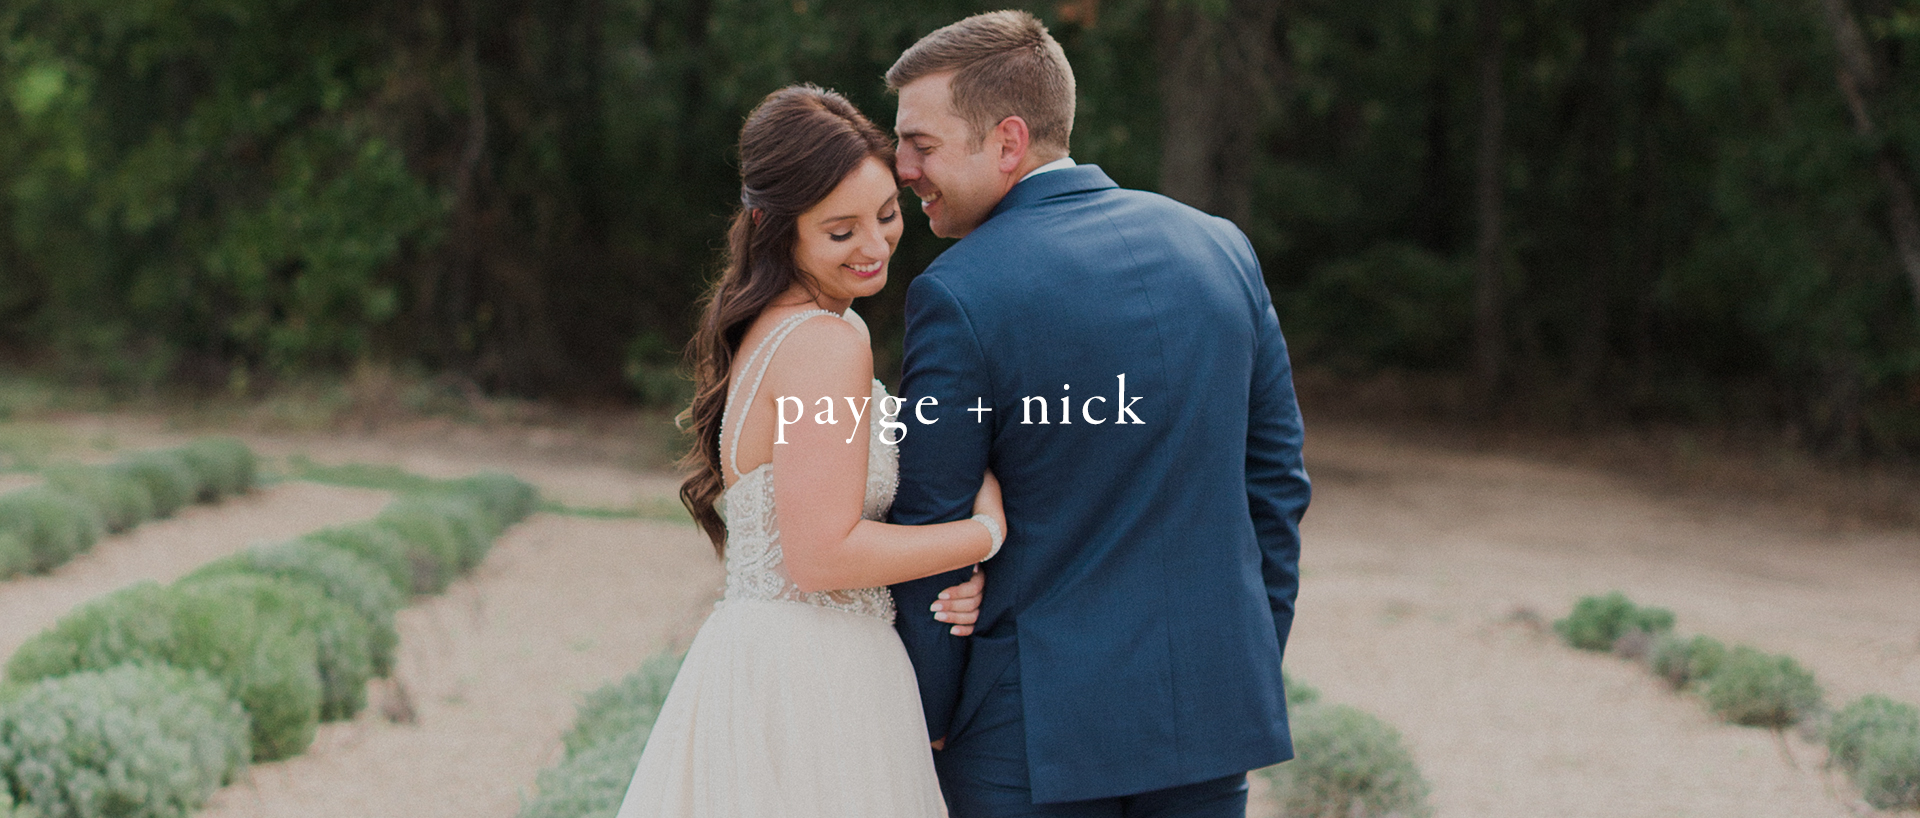 Payge + Nick | Quinlan, Texas | The White Sparrow Barn